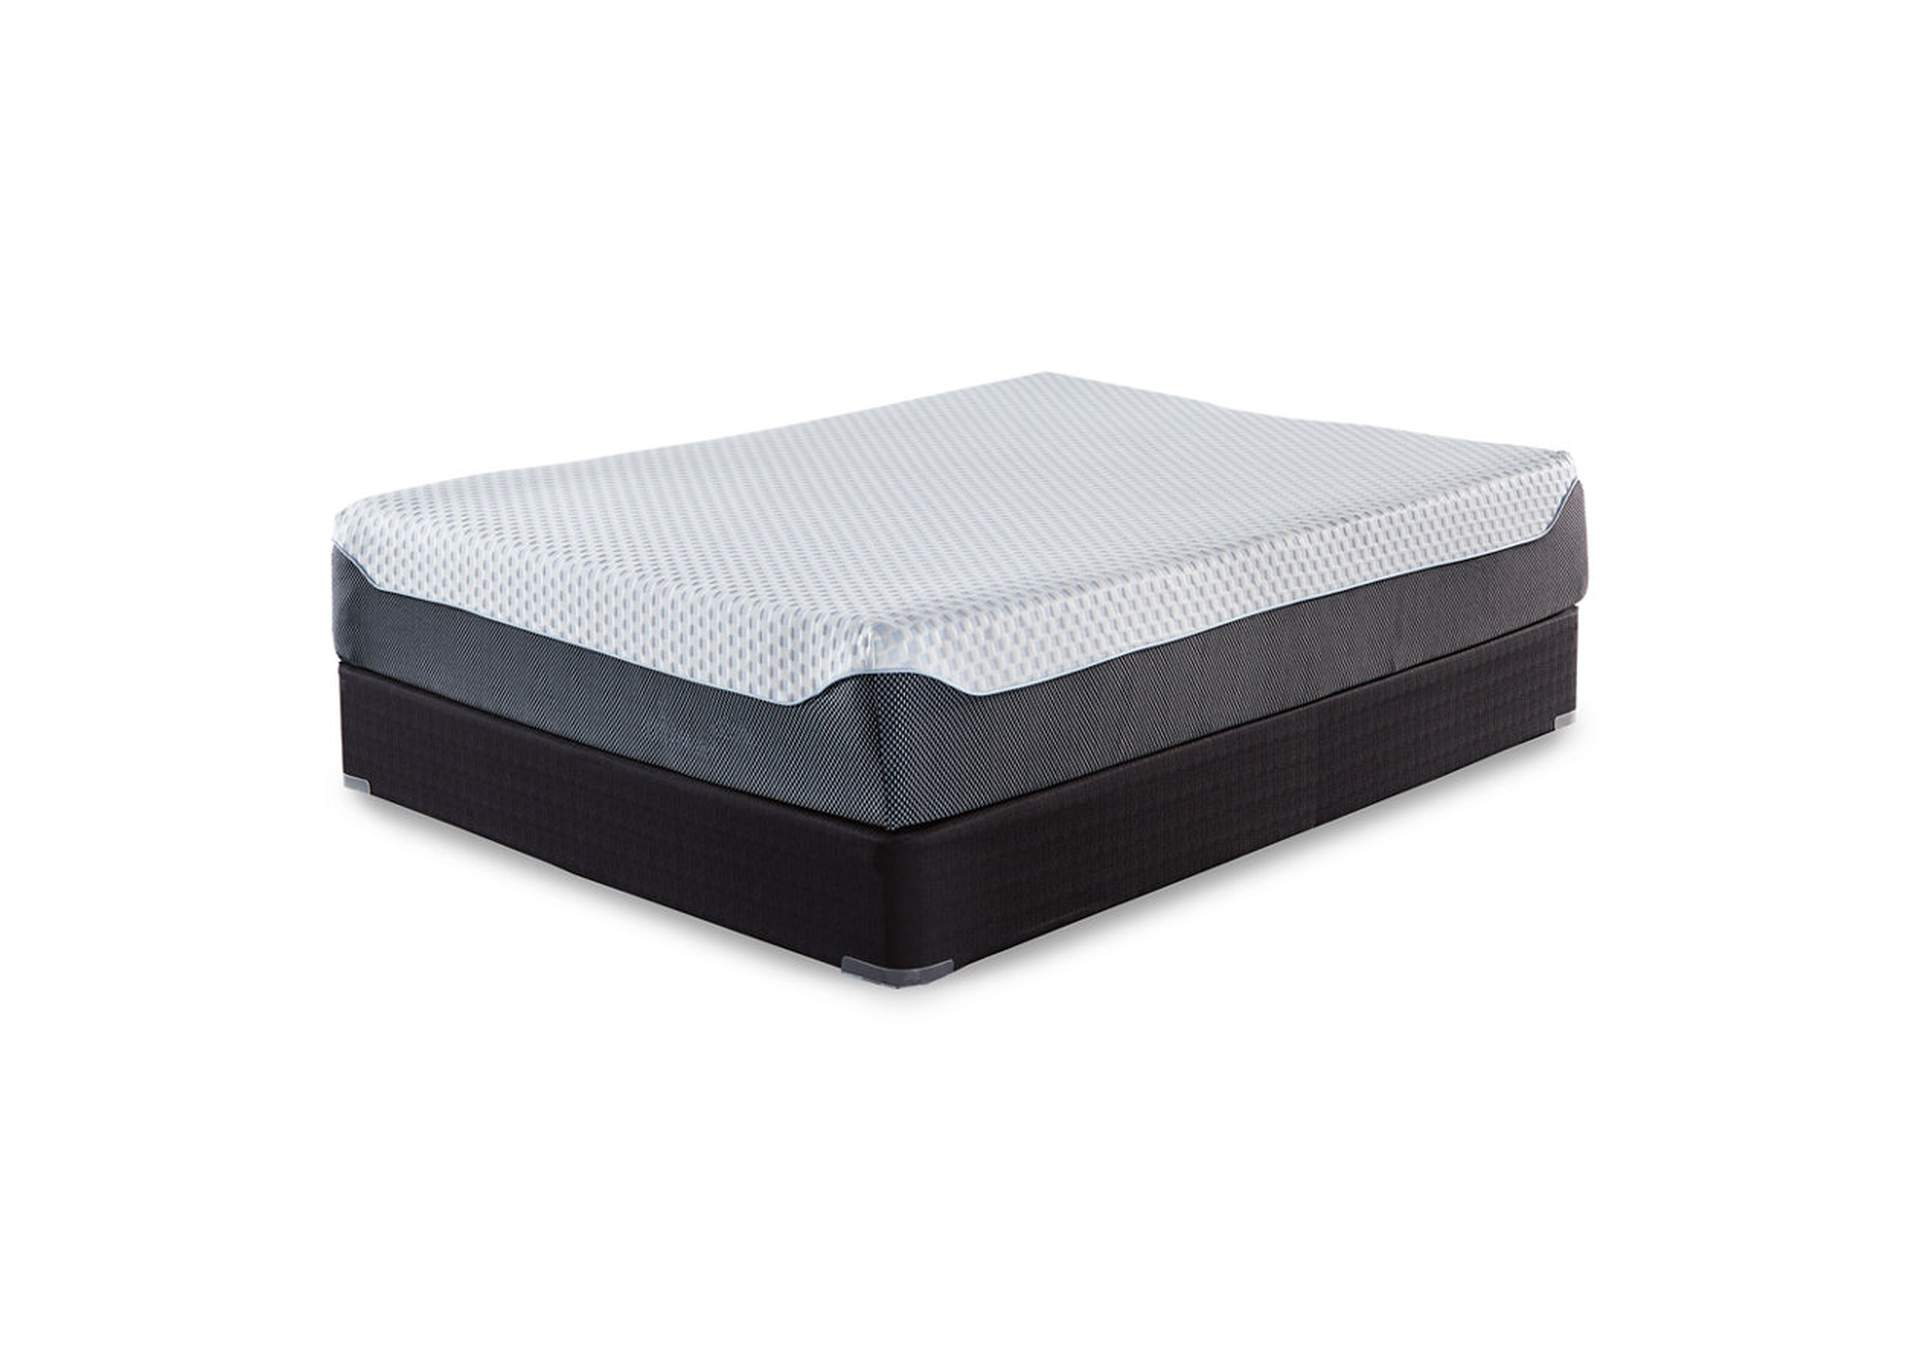 12 Inch Chime Elite California King Memory Foam Mattress in a box w/Foundation,Sierra Sleep by Ashley